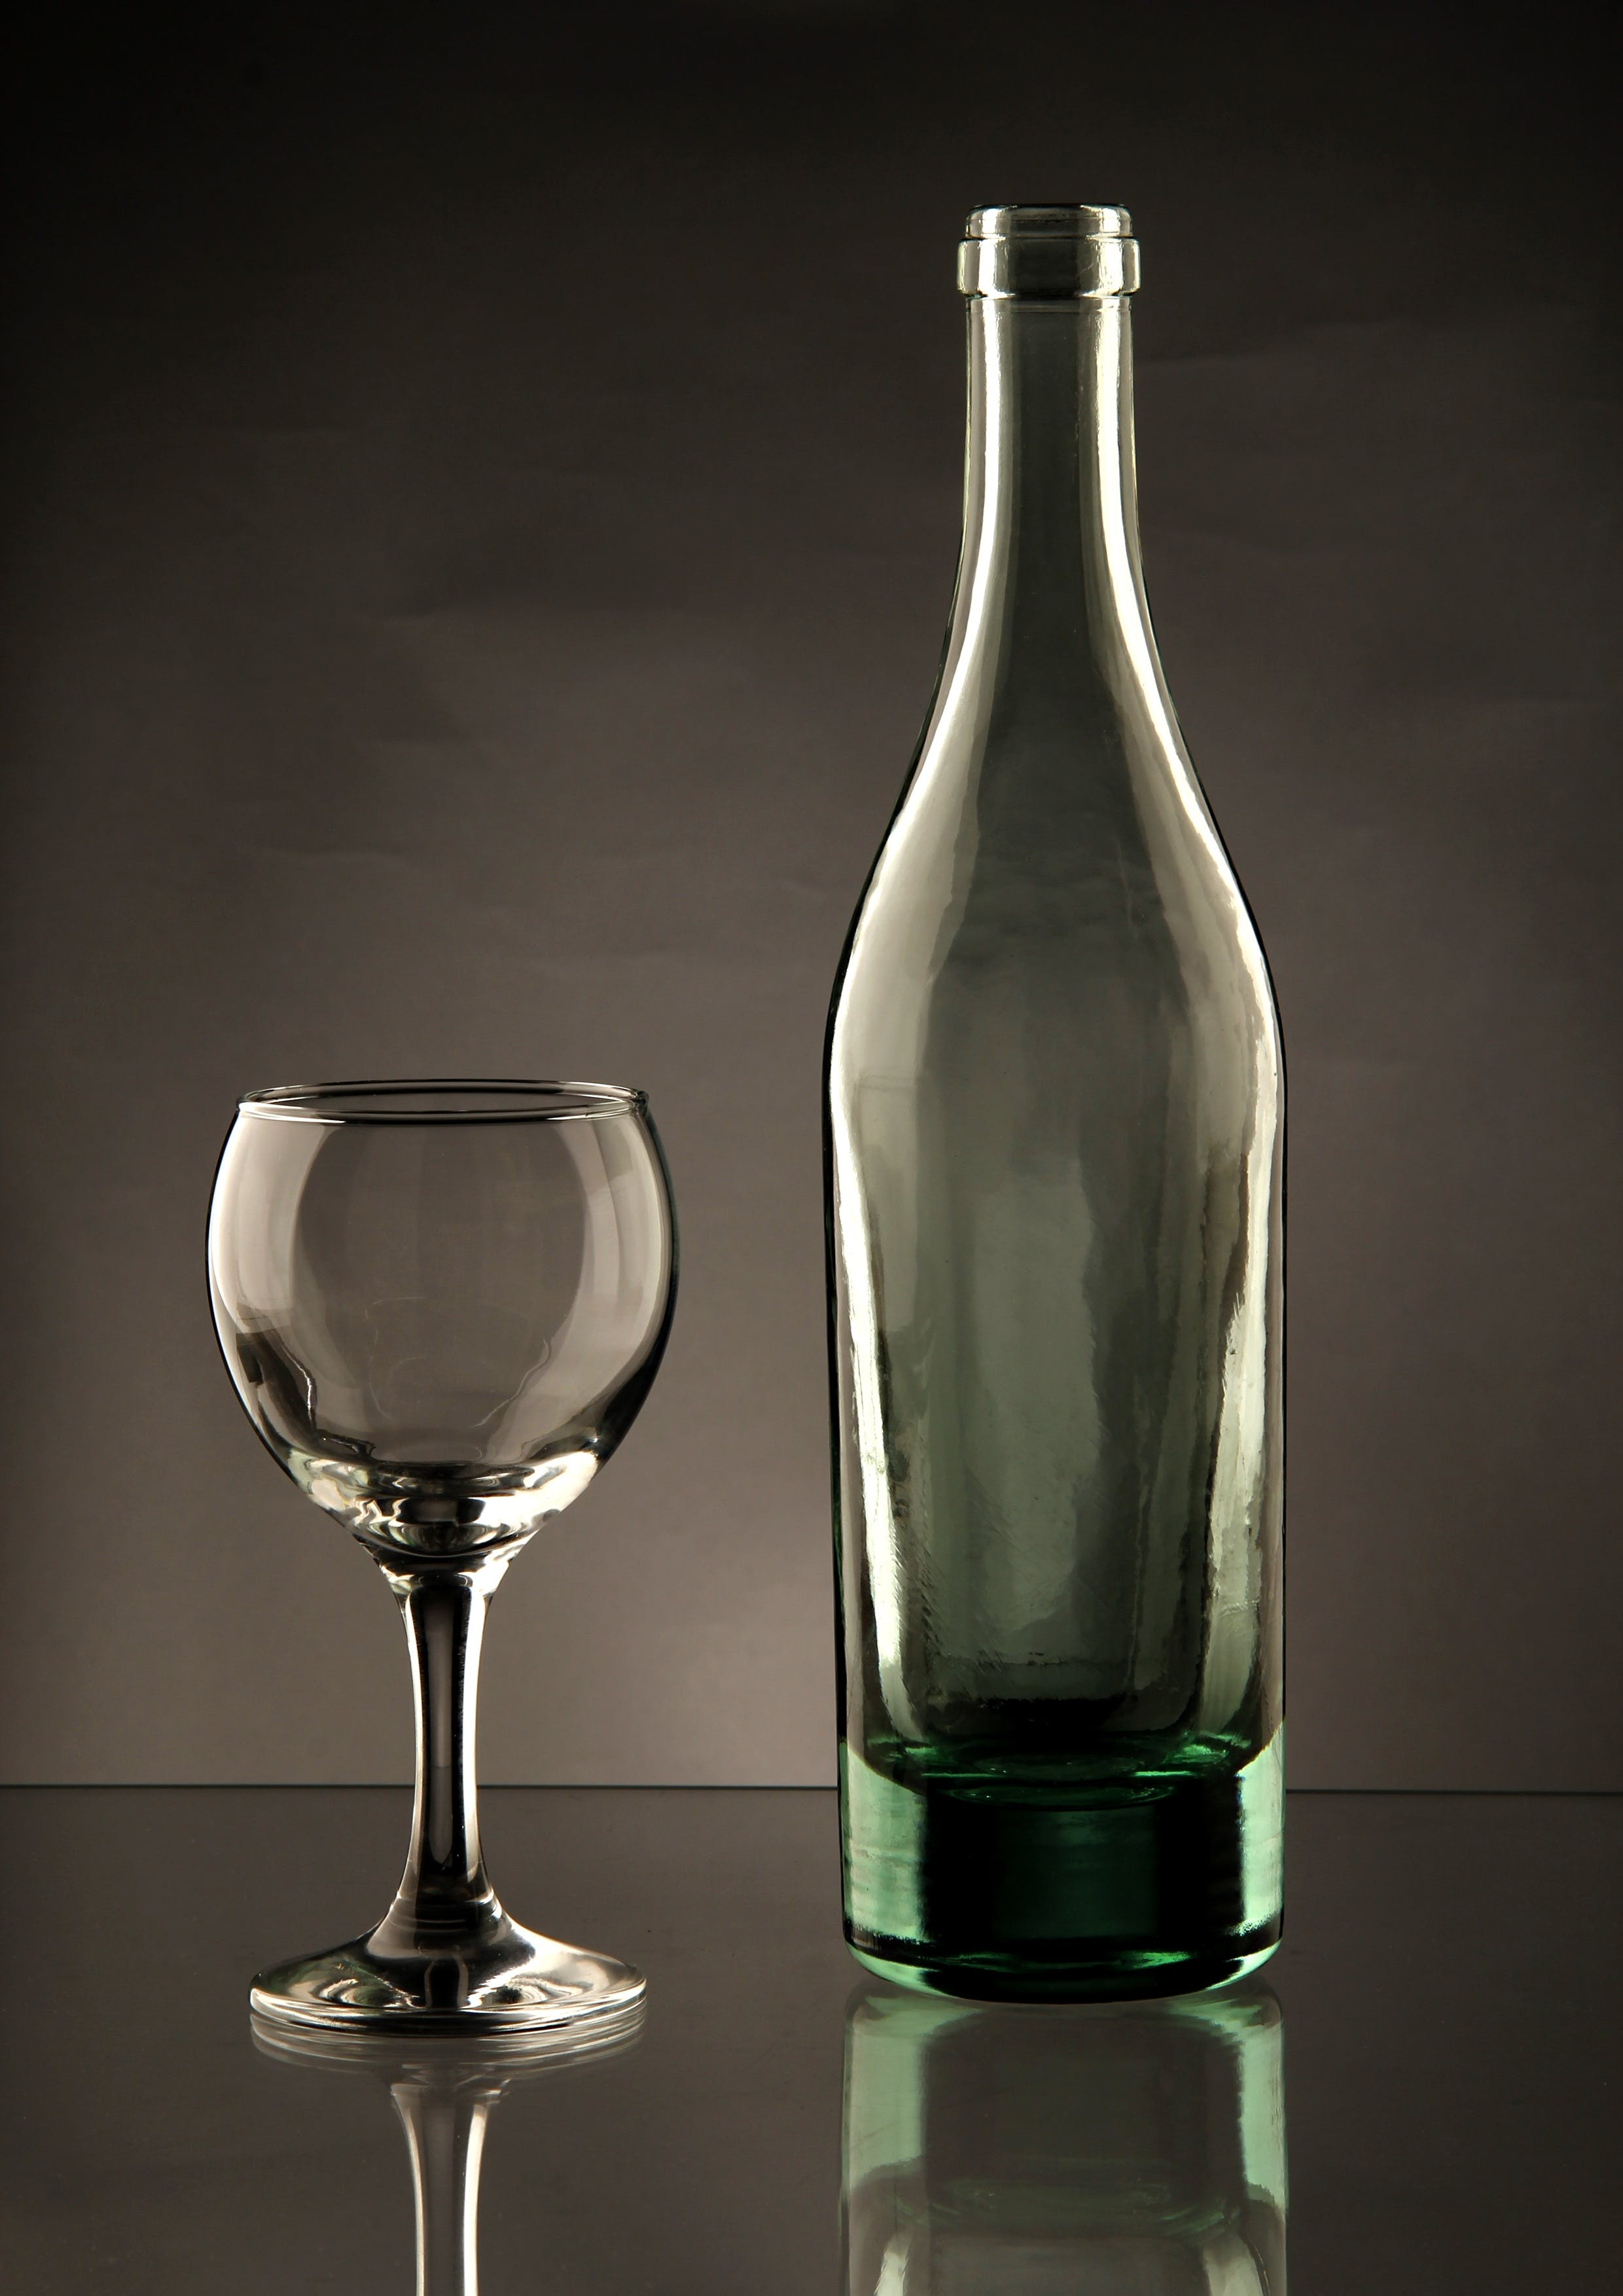 Clear Glass Bottle Beside Wine Glass